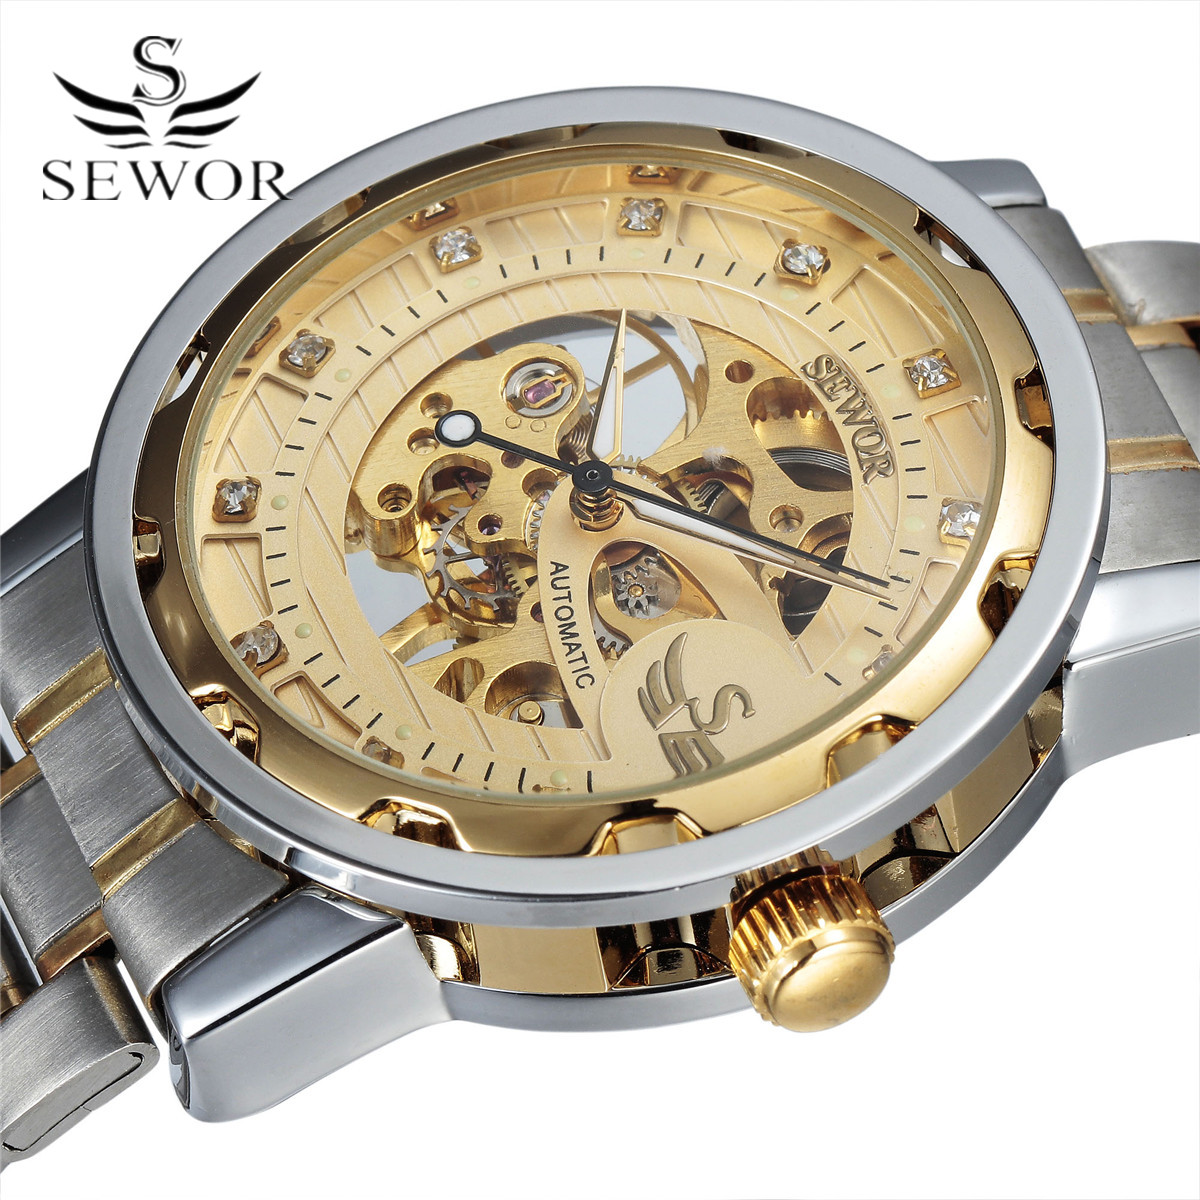 SEWOR Golden font b Men b font Skeleton font b Mechanical b font Watch Stainess Steel